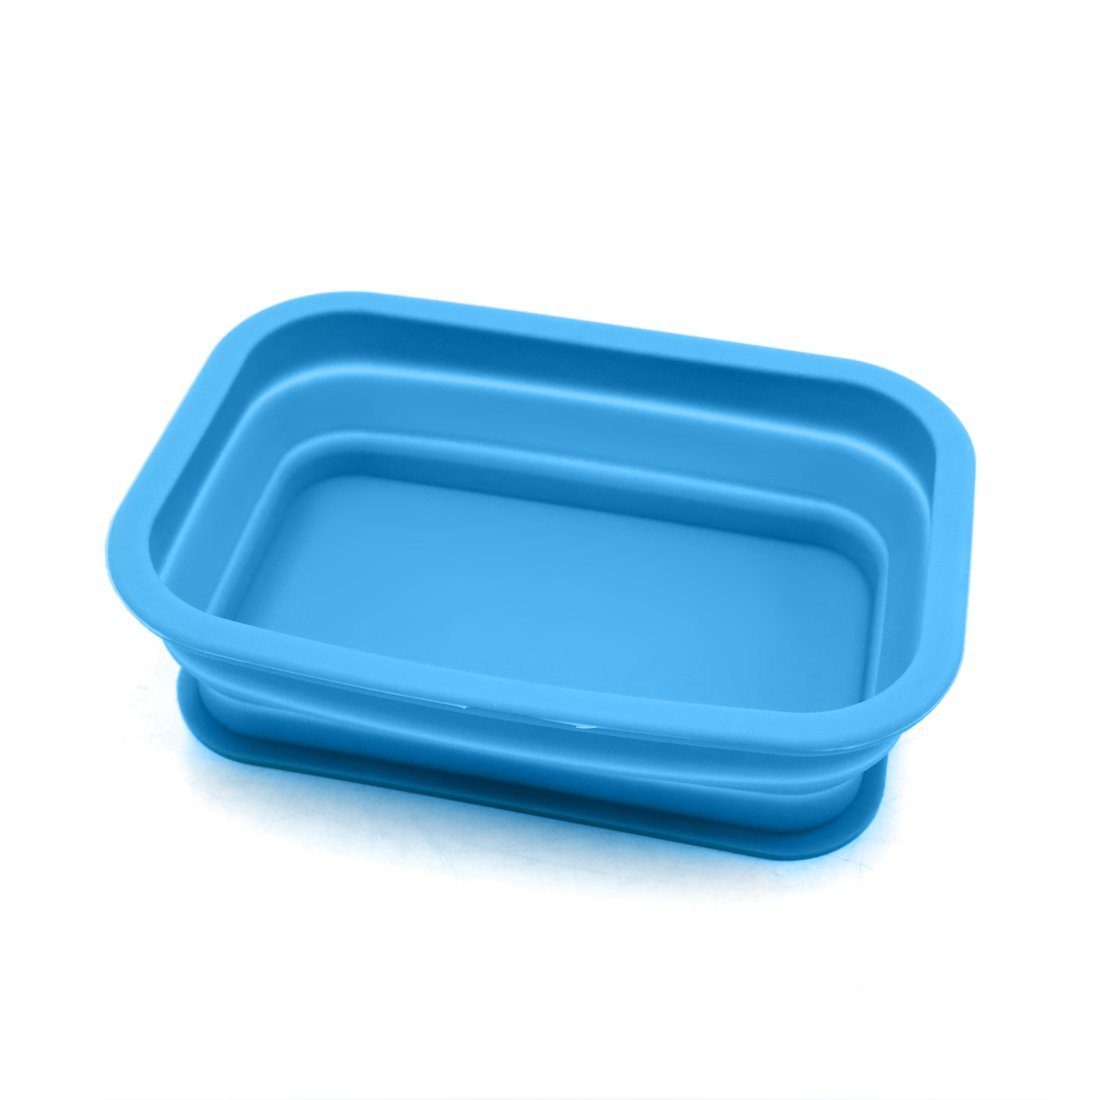 sourcing map Bleu Rectangle Silicone Tableau Bord Auto Non-Slip Phone Support Bo/îte